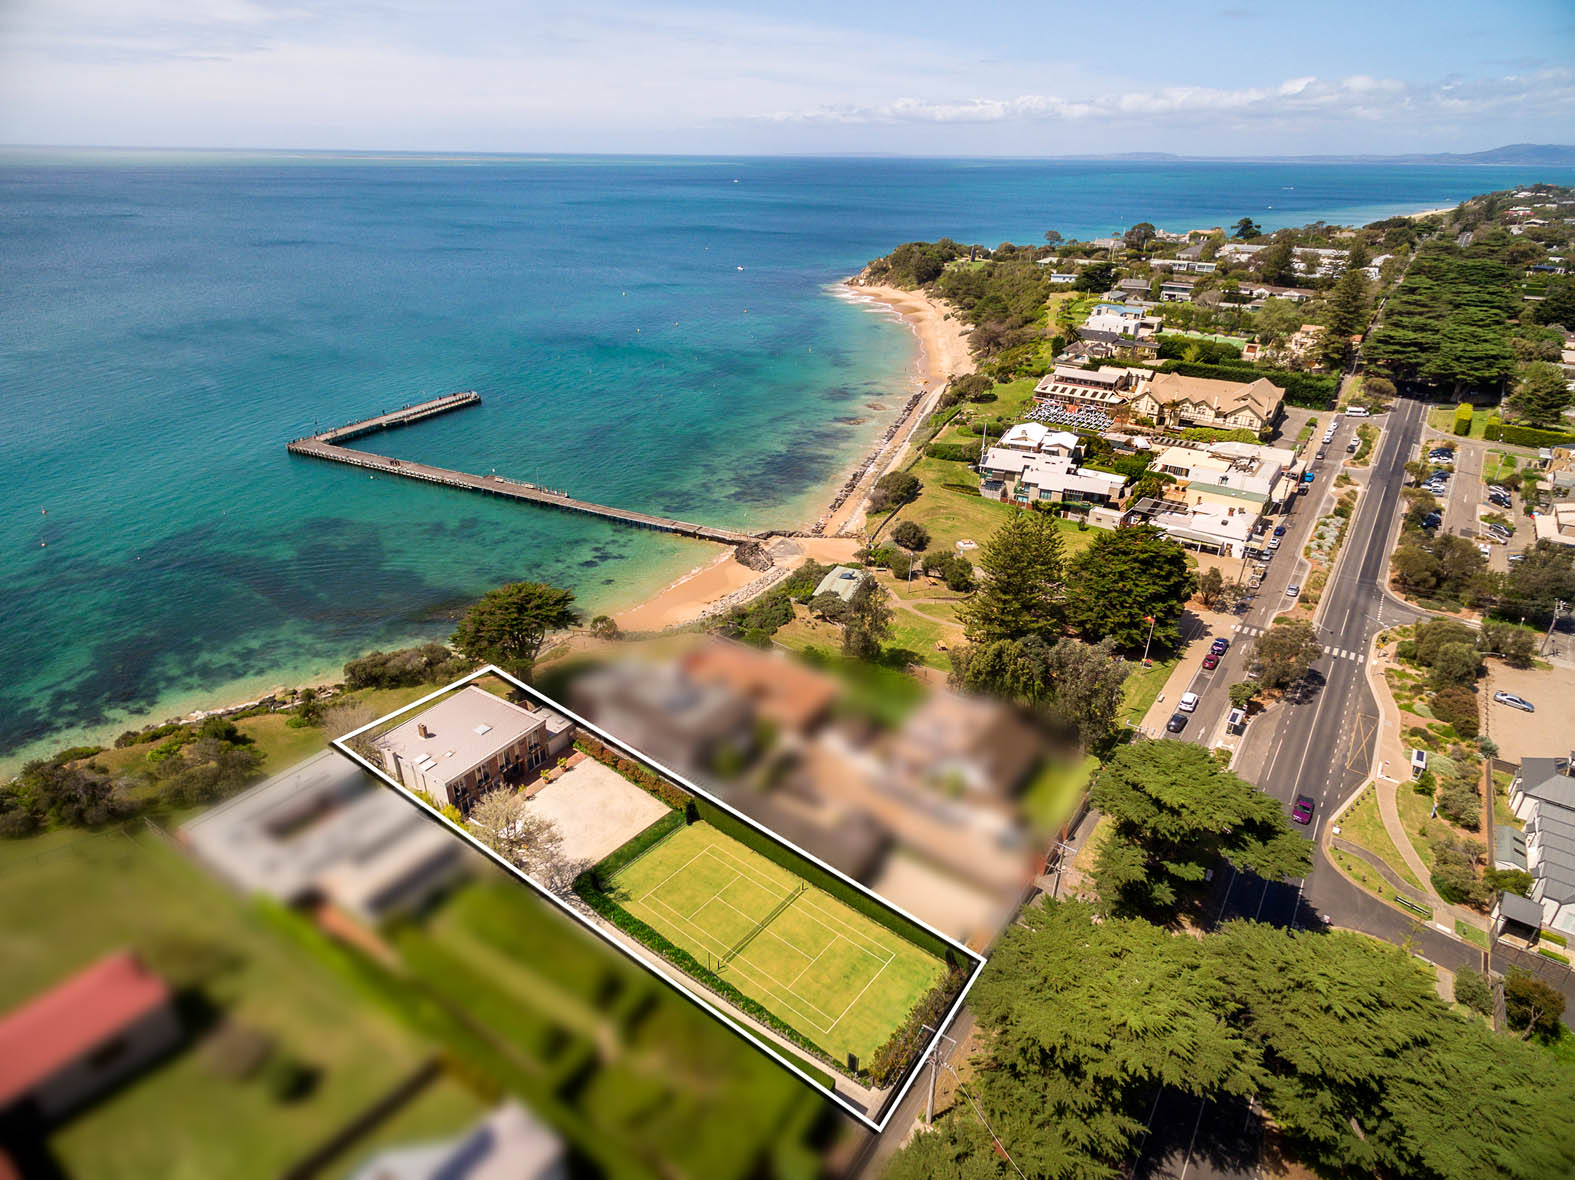 Abers_3792 Point Nepean Road Portsea_JH_Drone_136.jpg